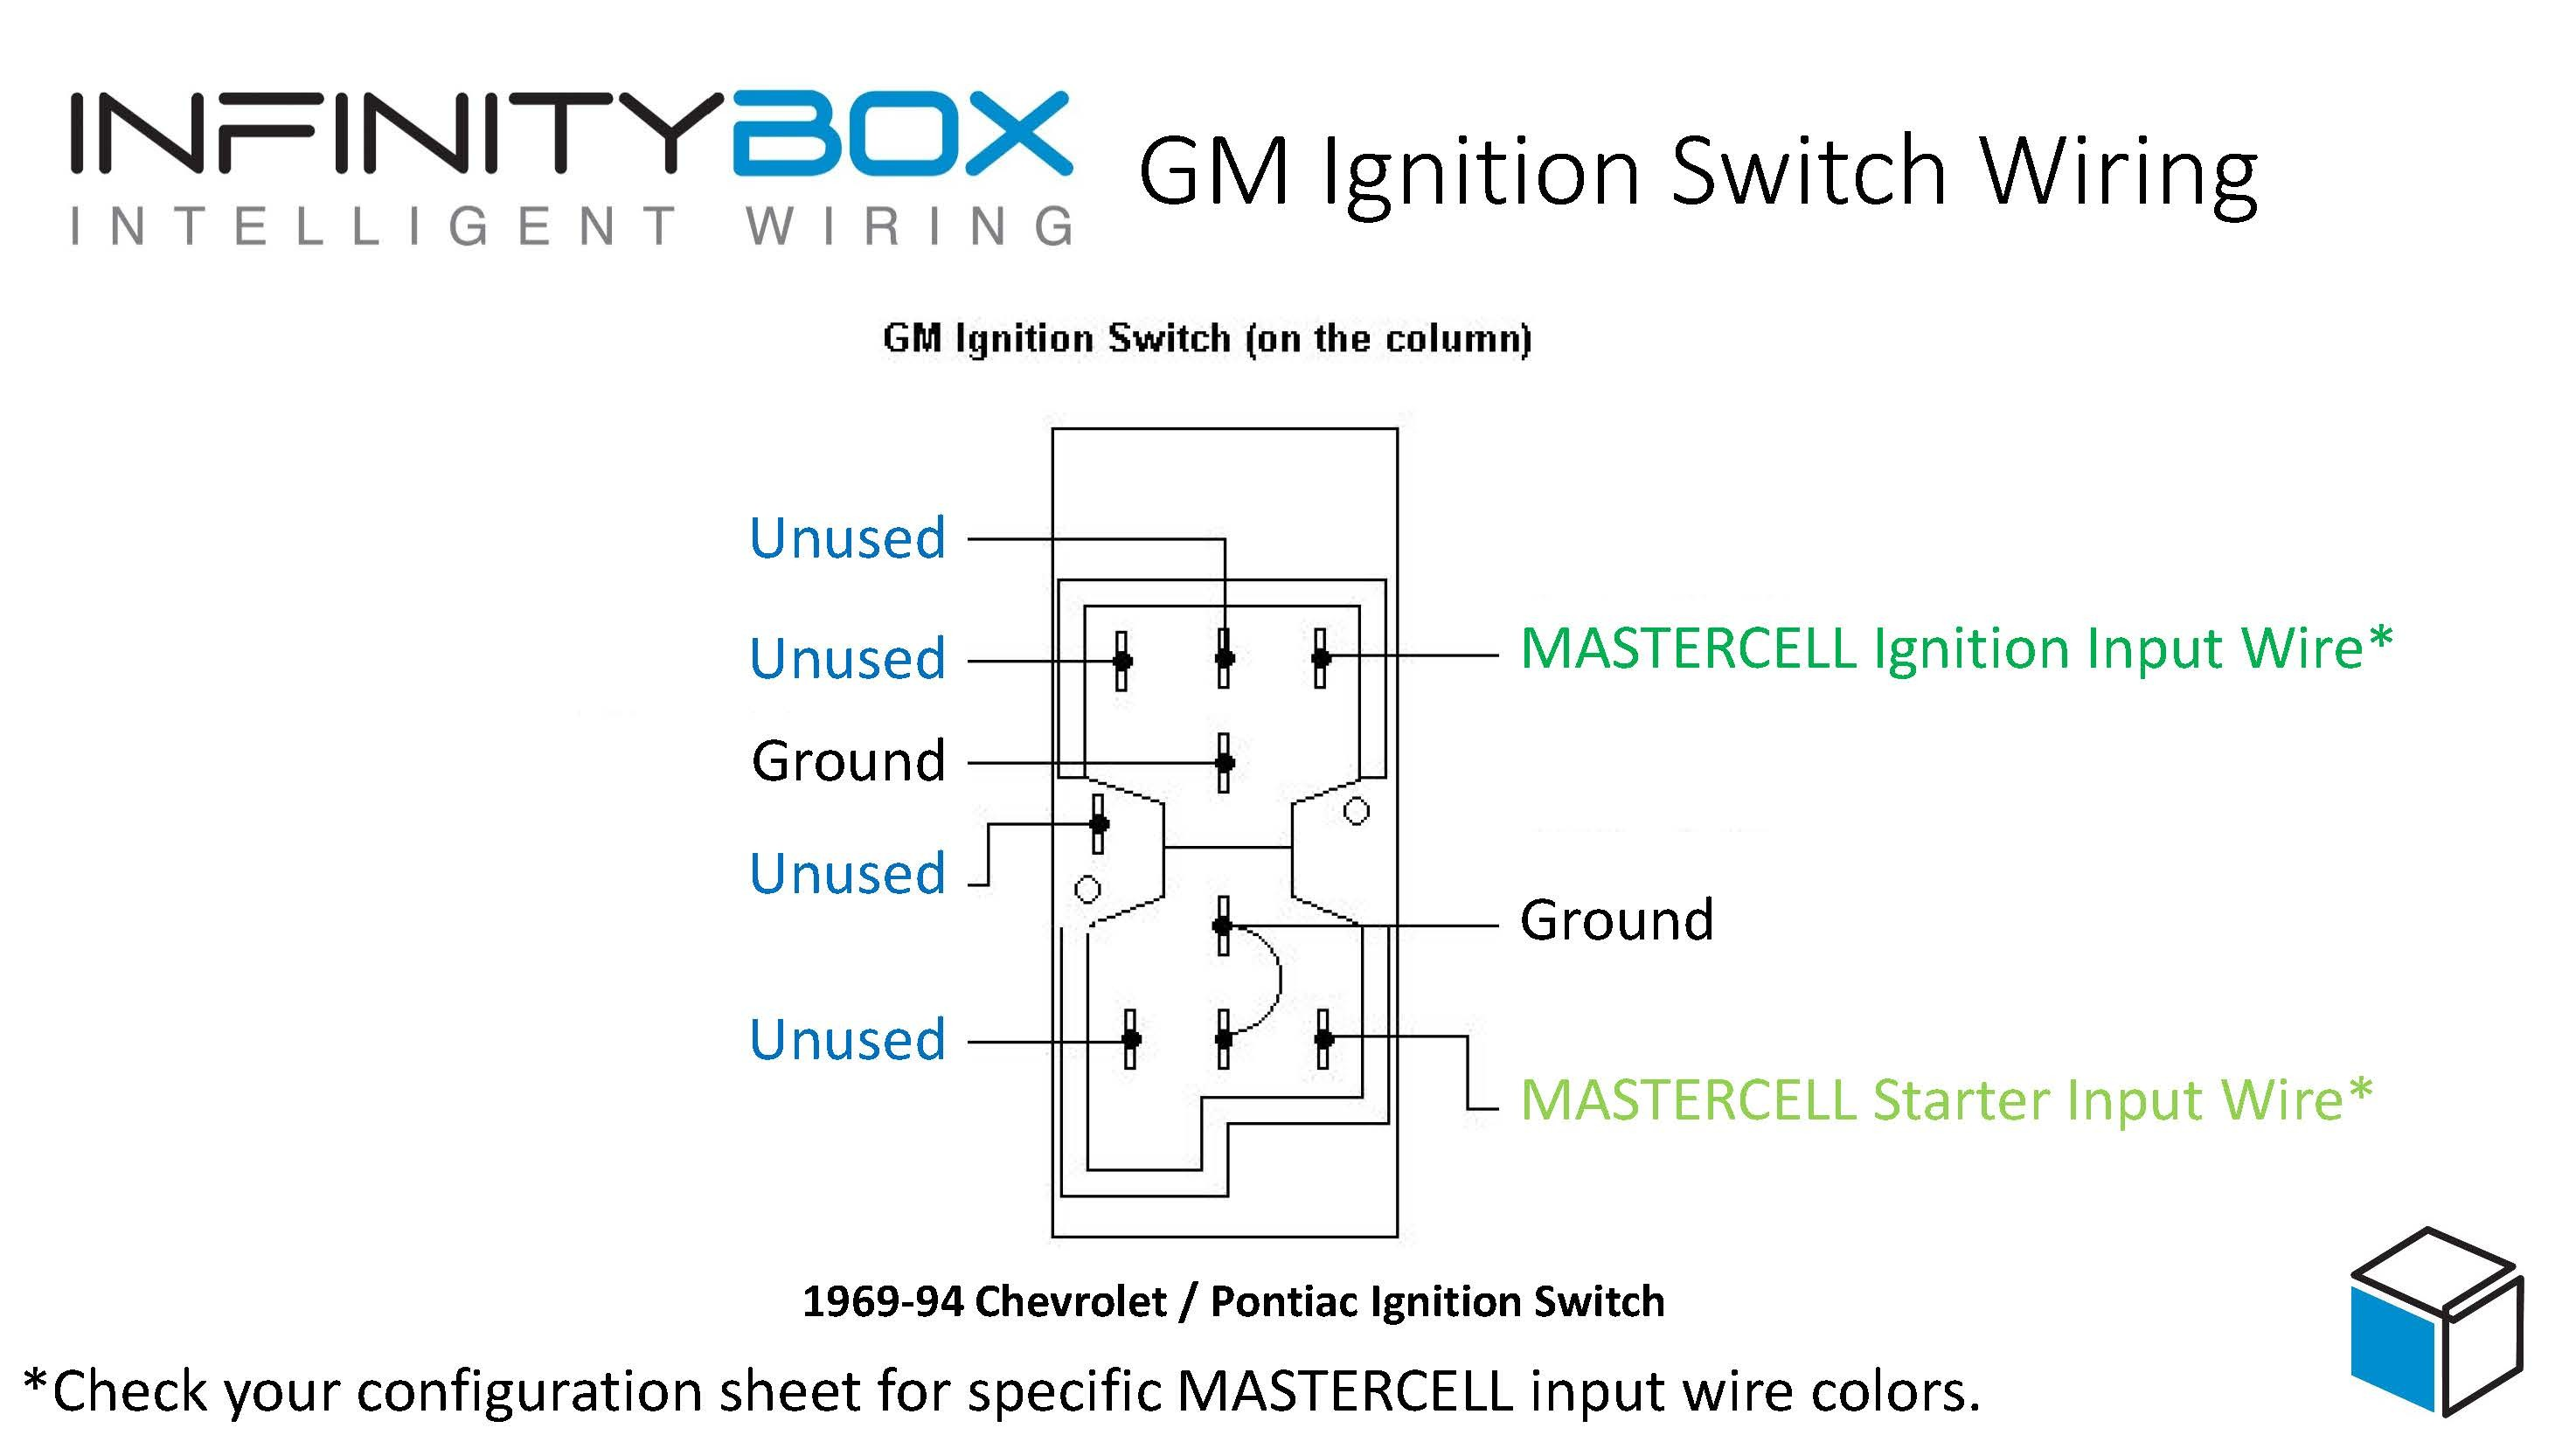 Universal Ignition Switch Wiring Diagram Wiring Diagram Ignition Switch Chevy Free Extraordinary Blurts Of Universal Ignition Switch Wiring Diagram